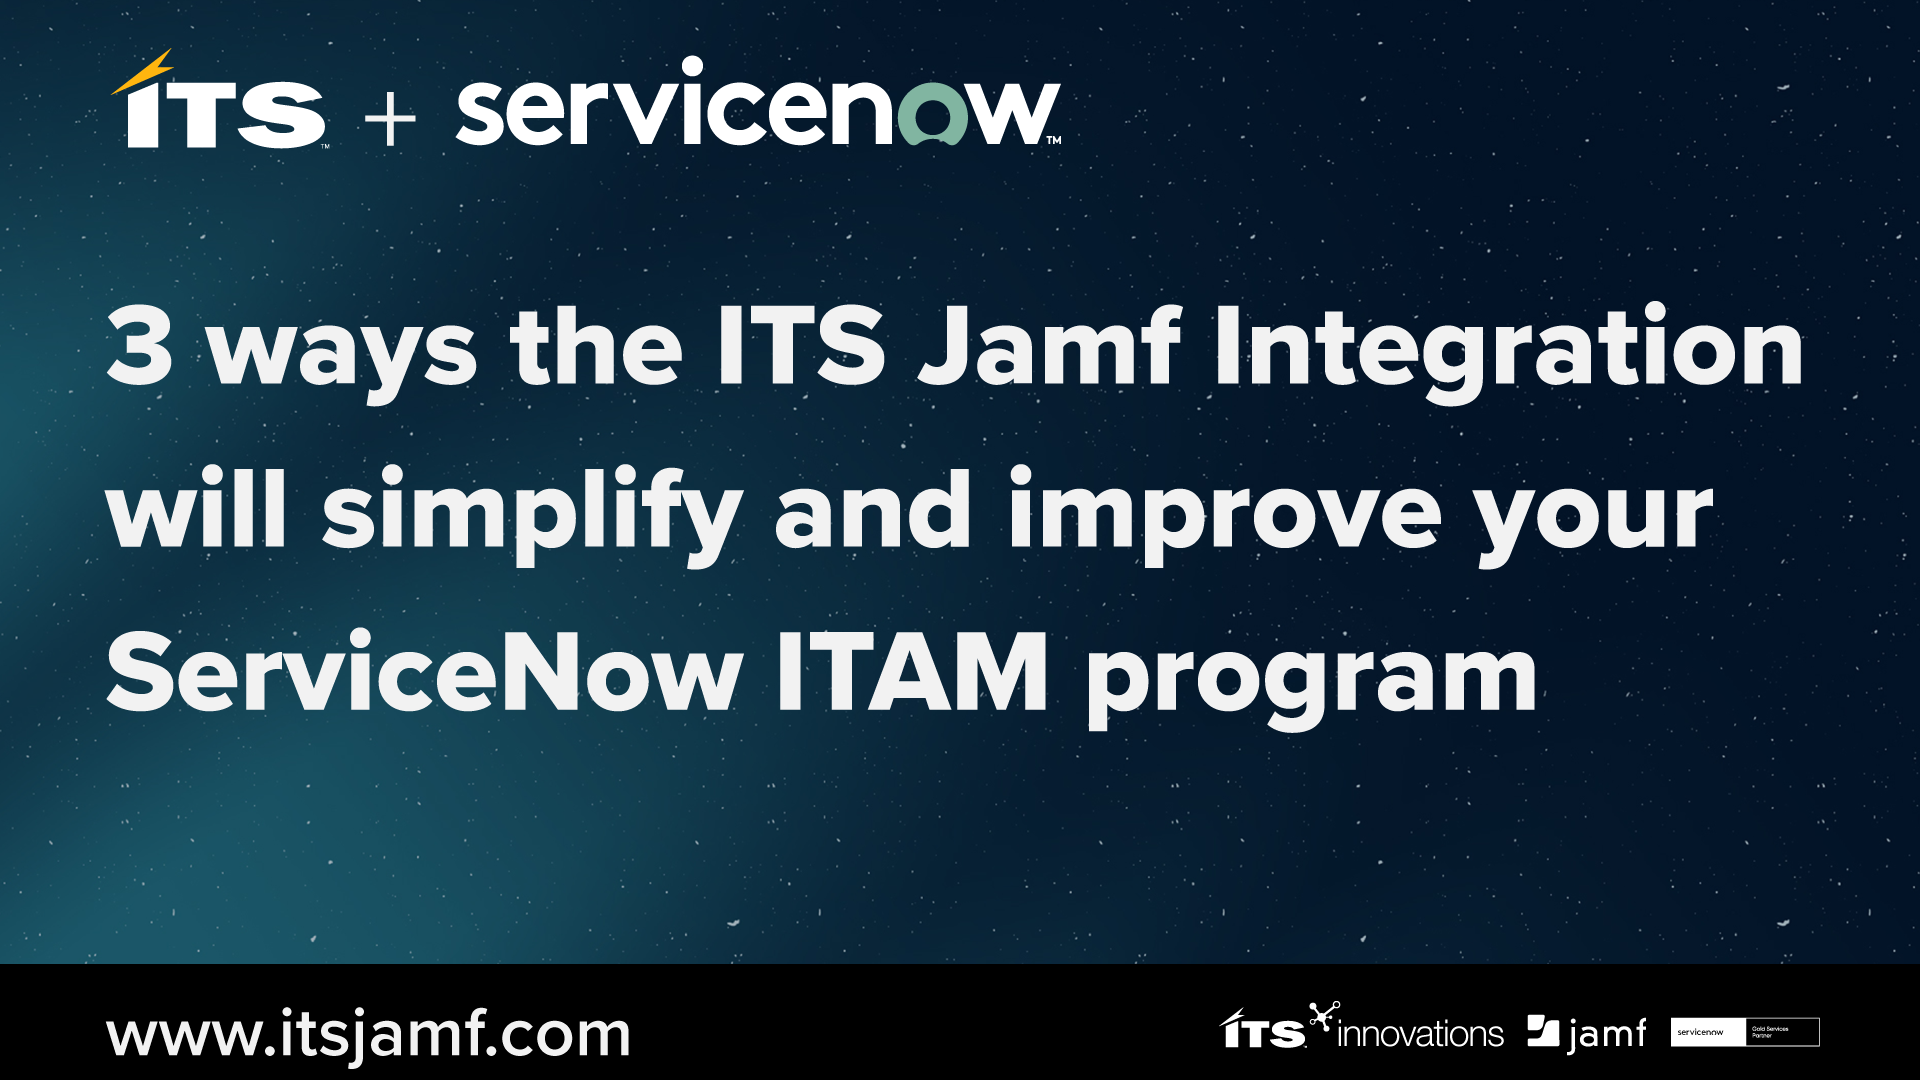 Webcast - 3 ways the ITS Jamf Integration will simplify and improve your ServiceNow ITAM program